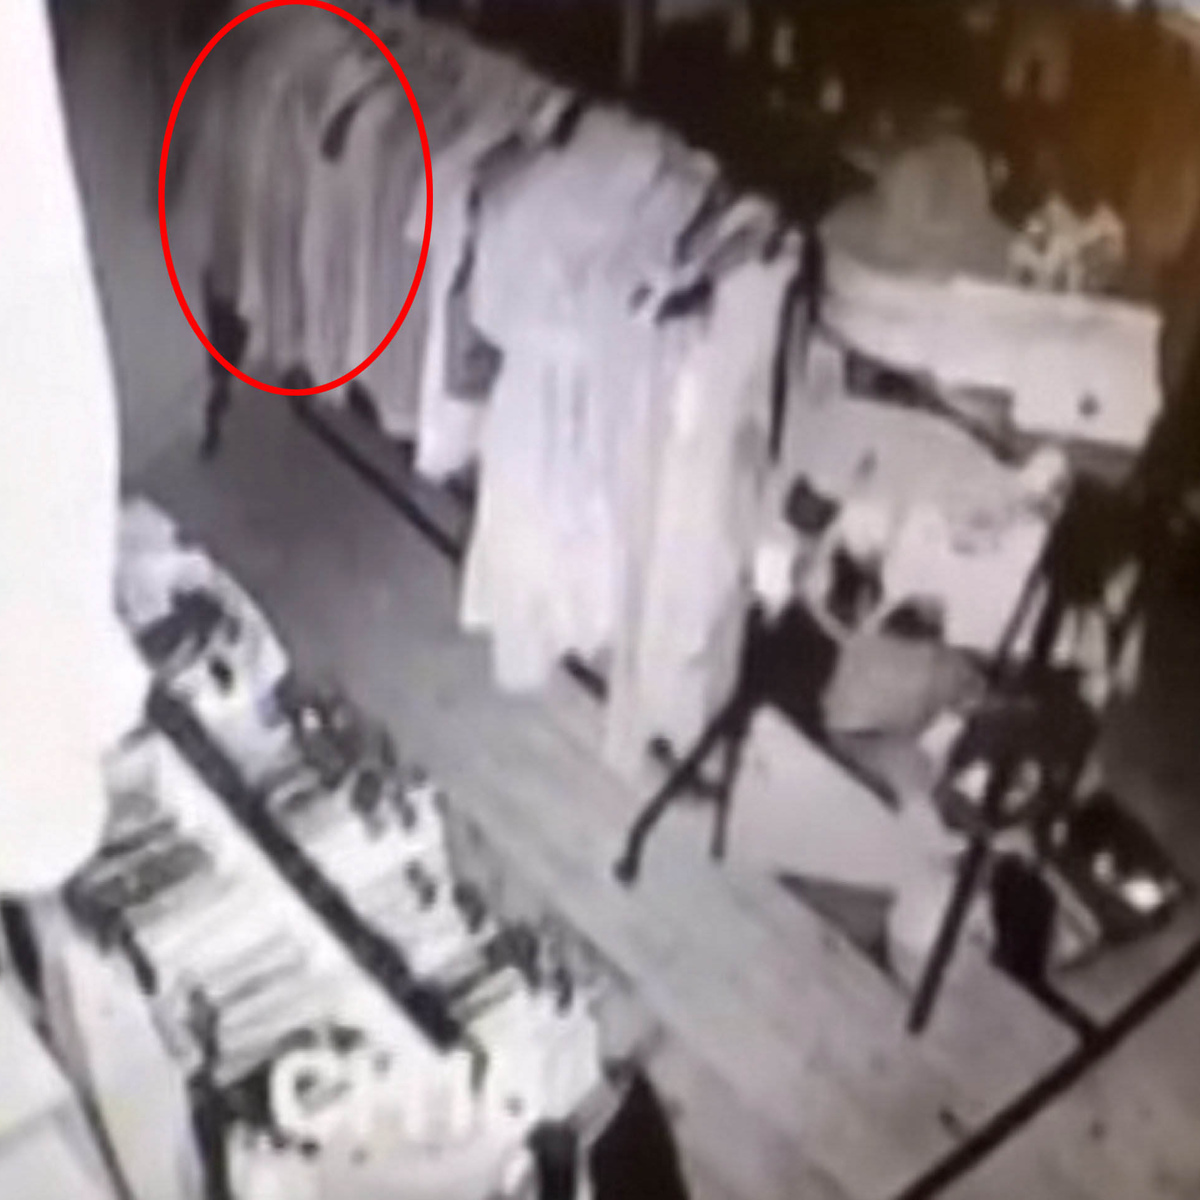 SWNS SHOP GHOST 04A Creepy As F*ck CCTV Footage Shows Ghost Wandering Around Vintage Store